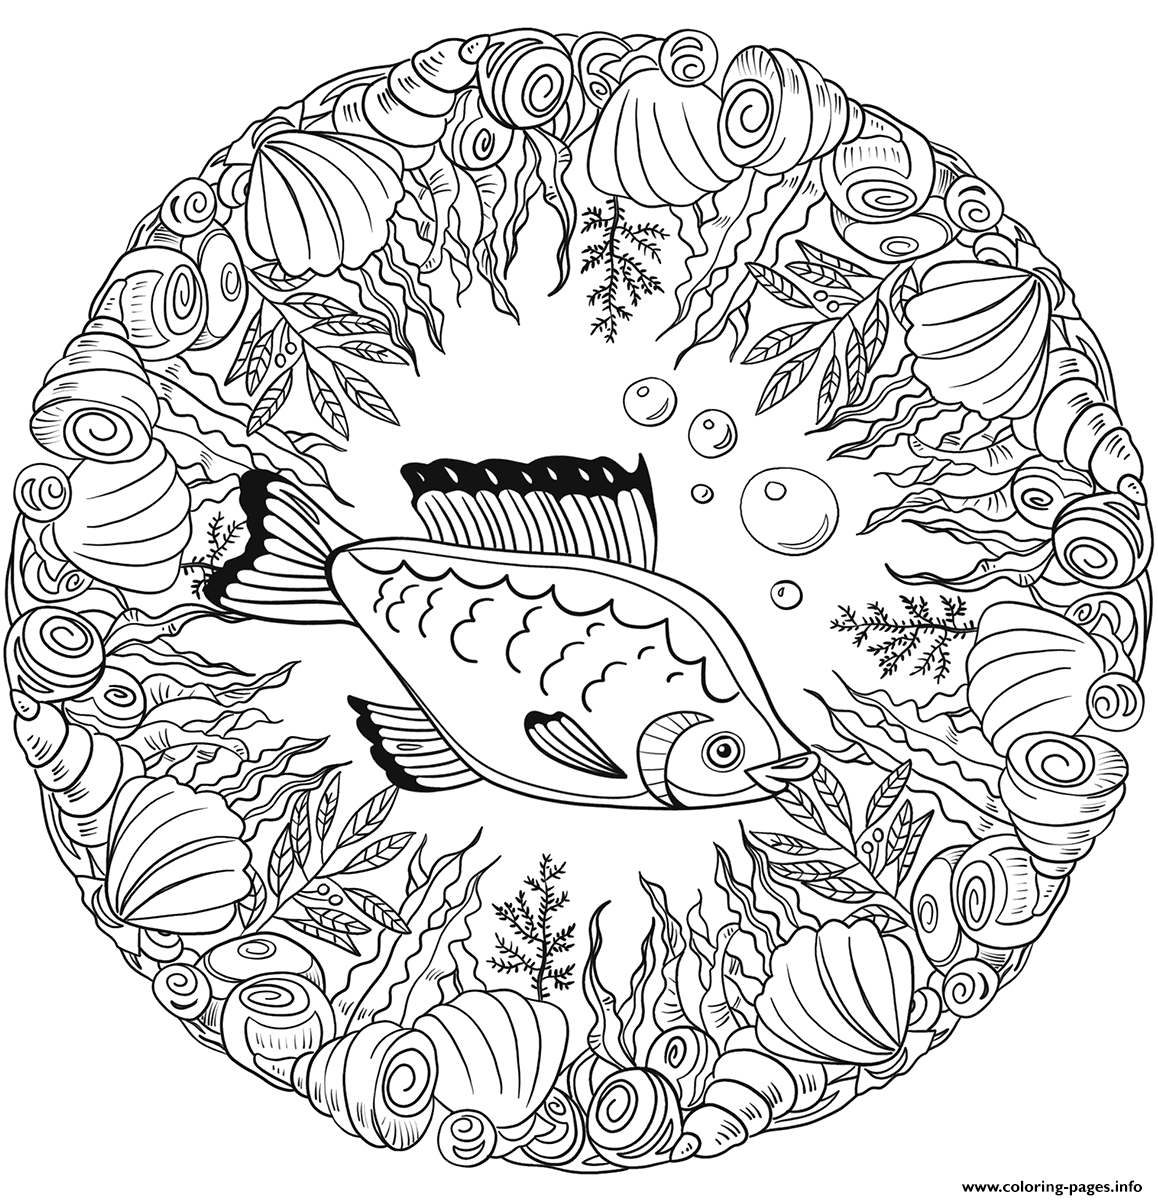 Fish Mandala Animal coloring pages